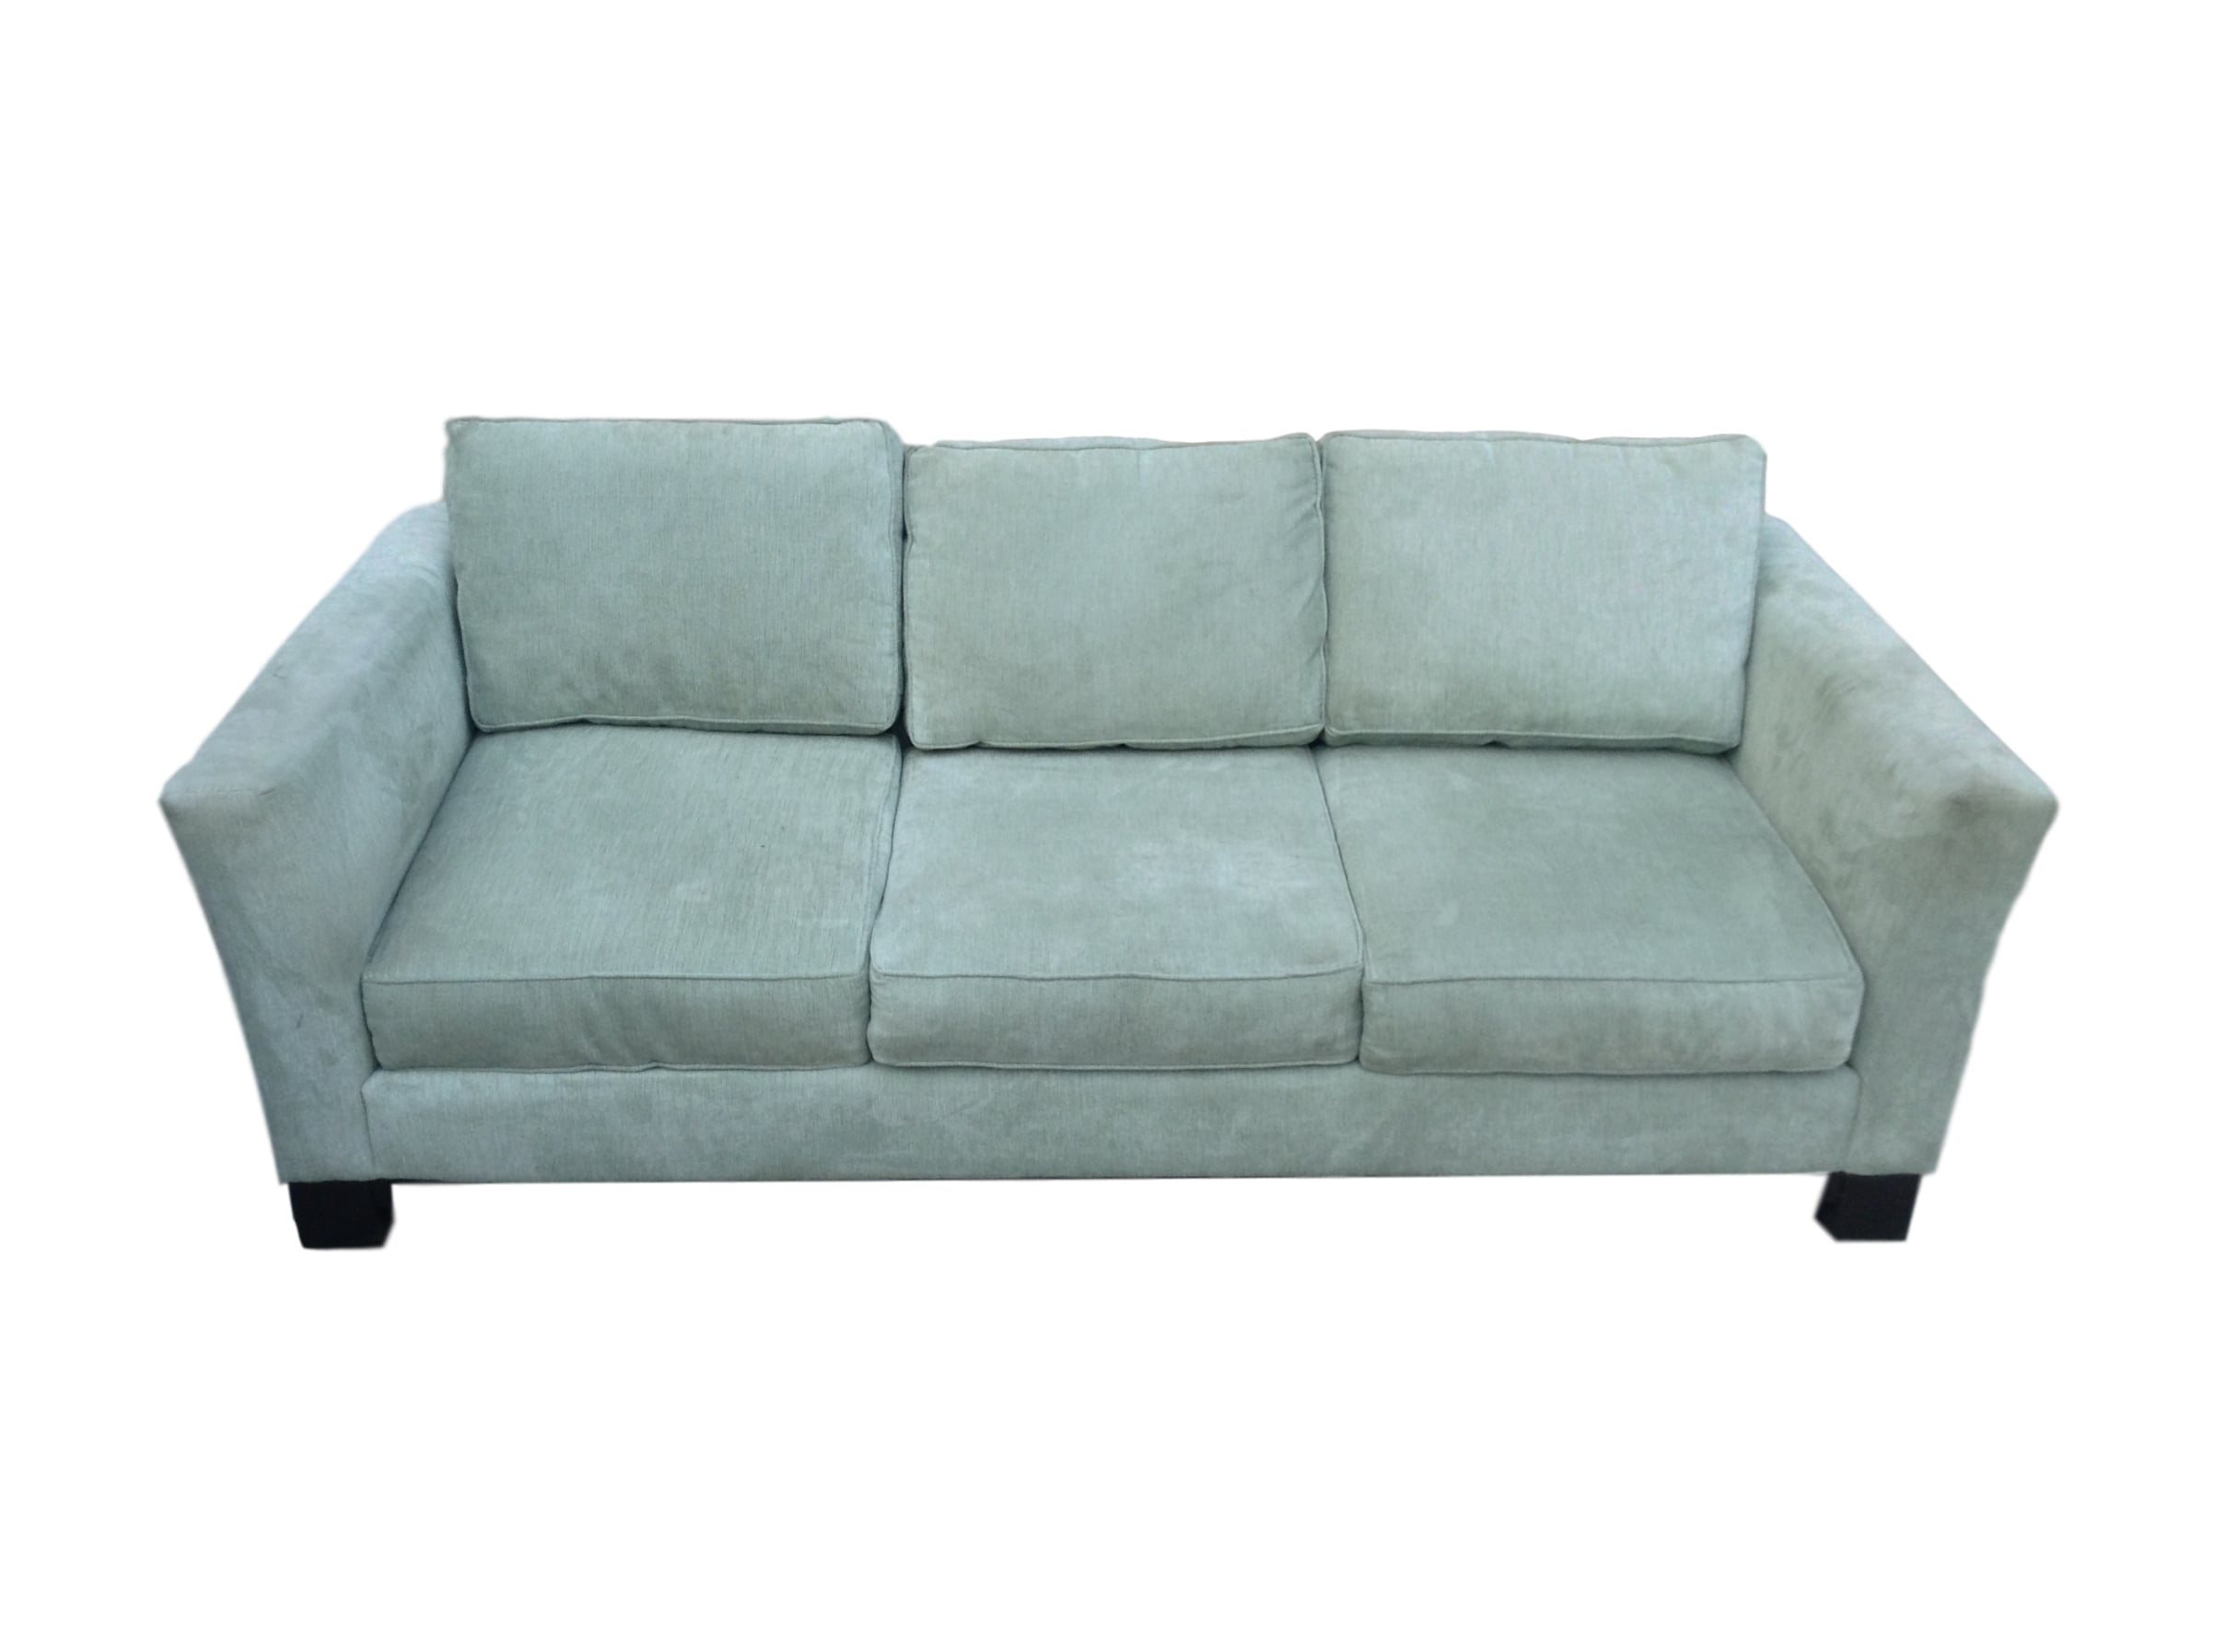 Prime Green Microfiber Sofa Pdpeps Interior Chair Design Pdpepsorg